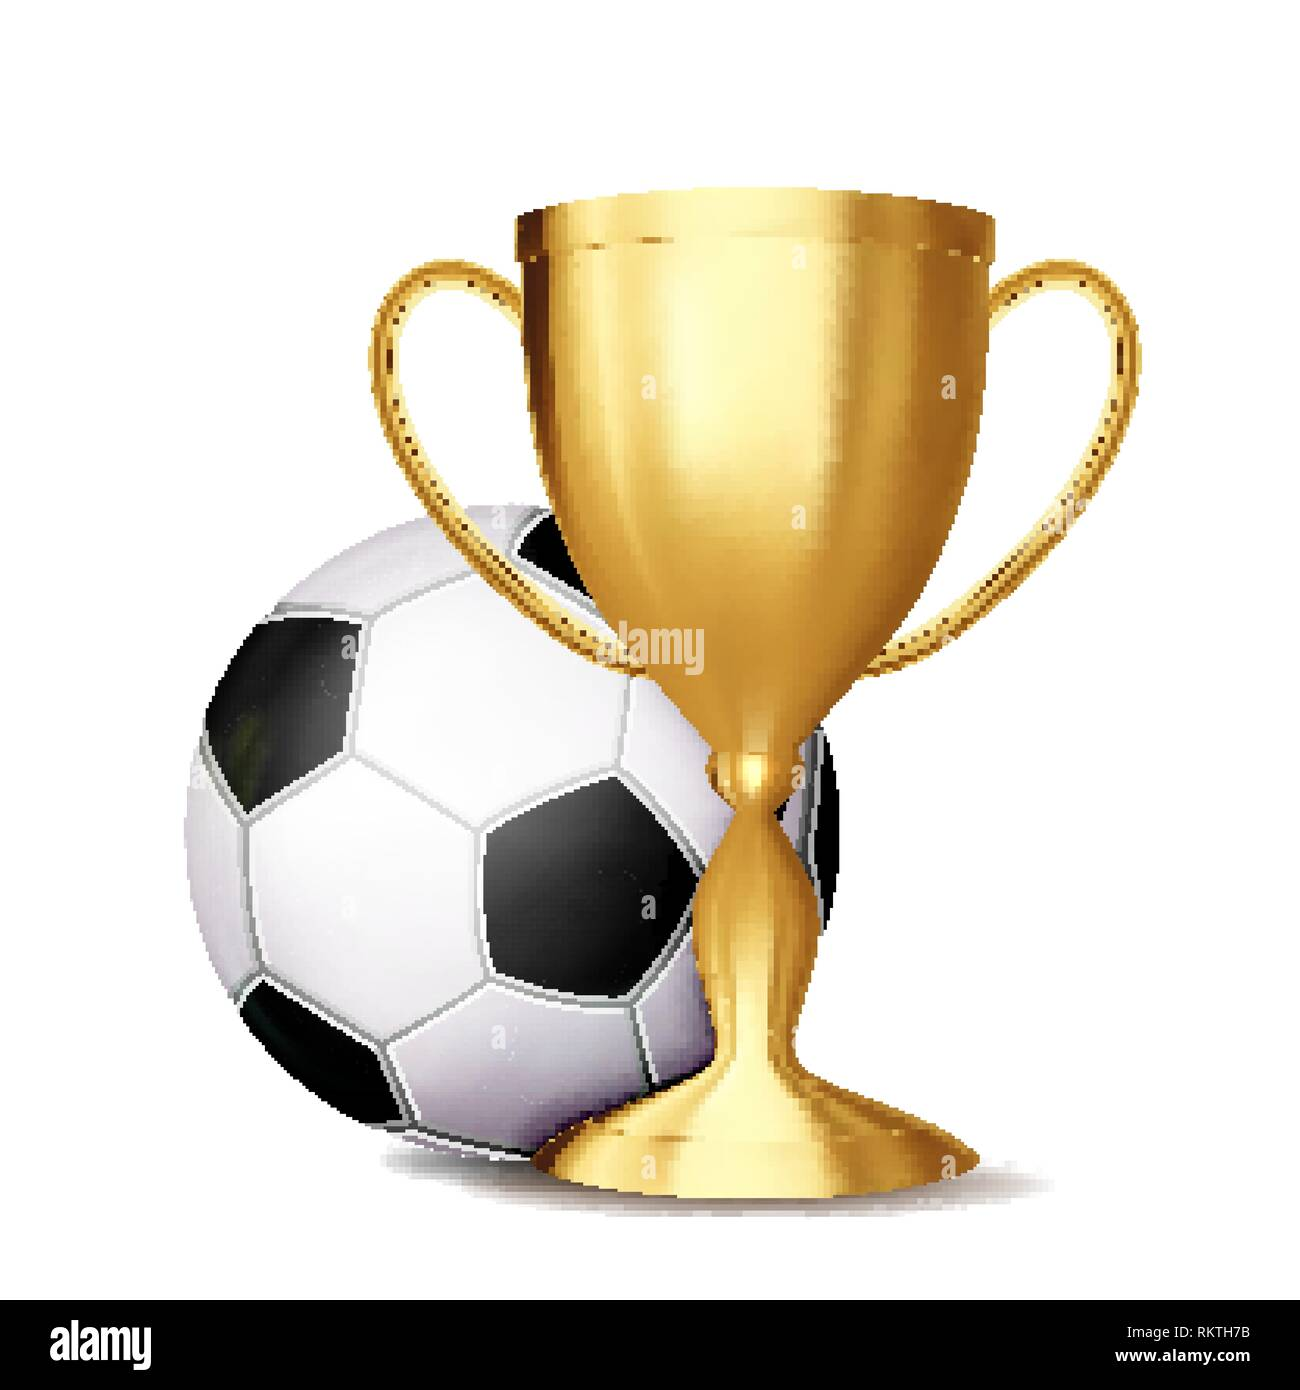 Soccer Award Vector. Football Ball, Golden Cup. For Sport Promotion. Tournament, Championship Flyer Design. Football Club, Academy. Invitation Element - Stock Image